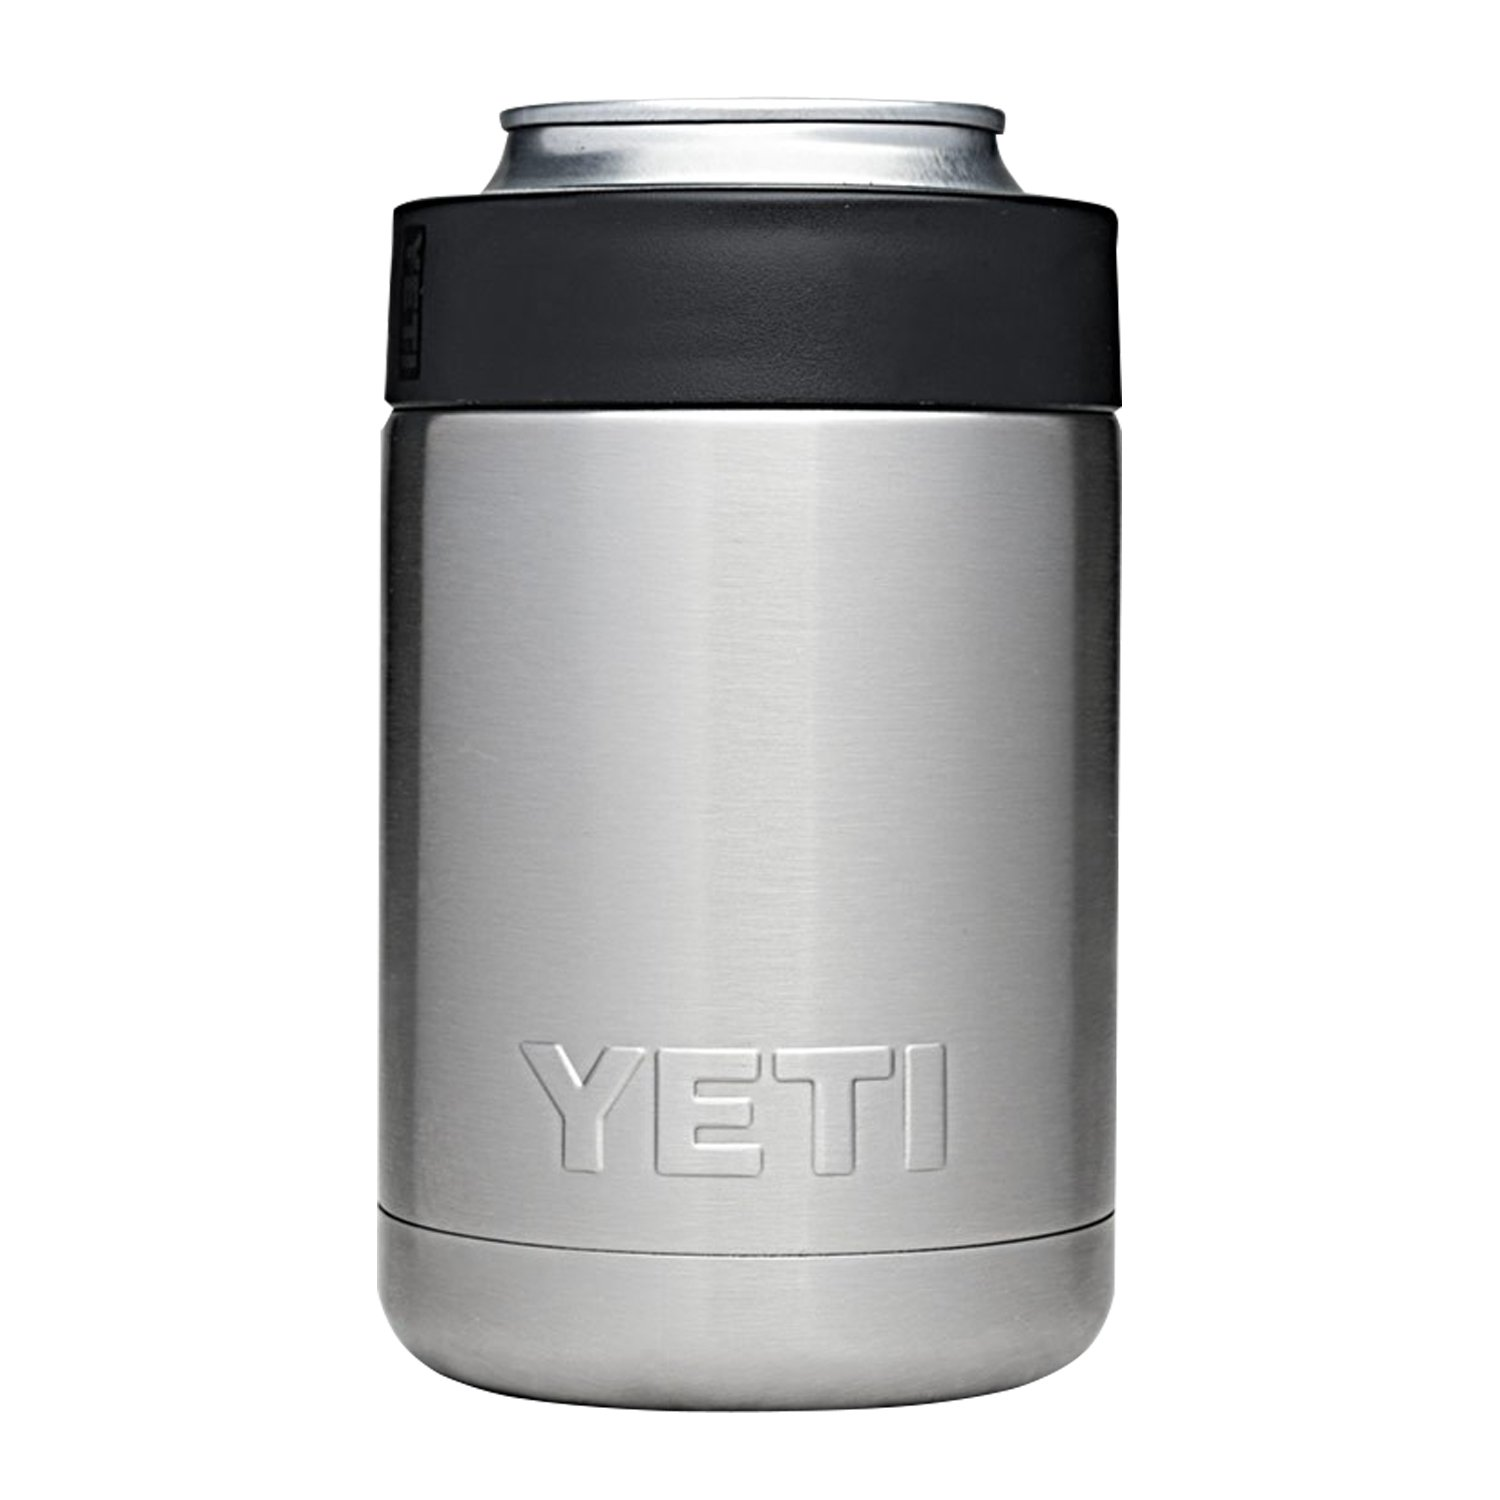 f52b38d61af Amazon.com: YETI Rambler Colster Can and Bottle Holder Silver One Size:  Sports & Outdoors